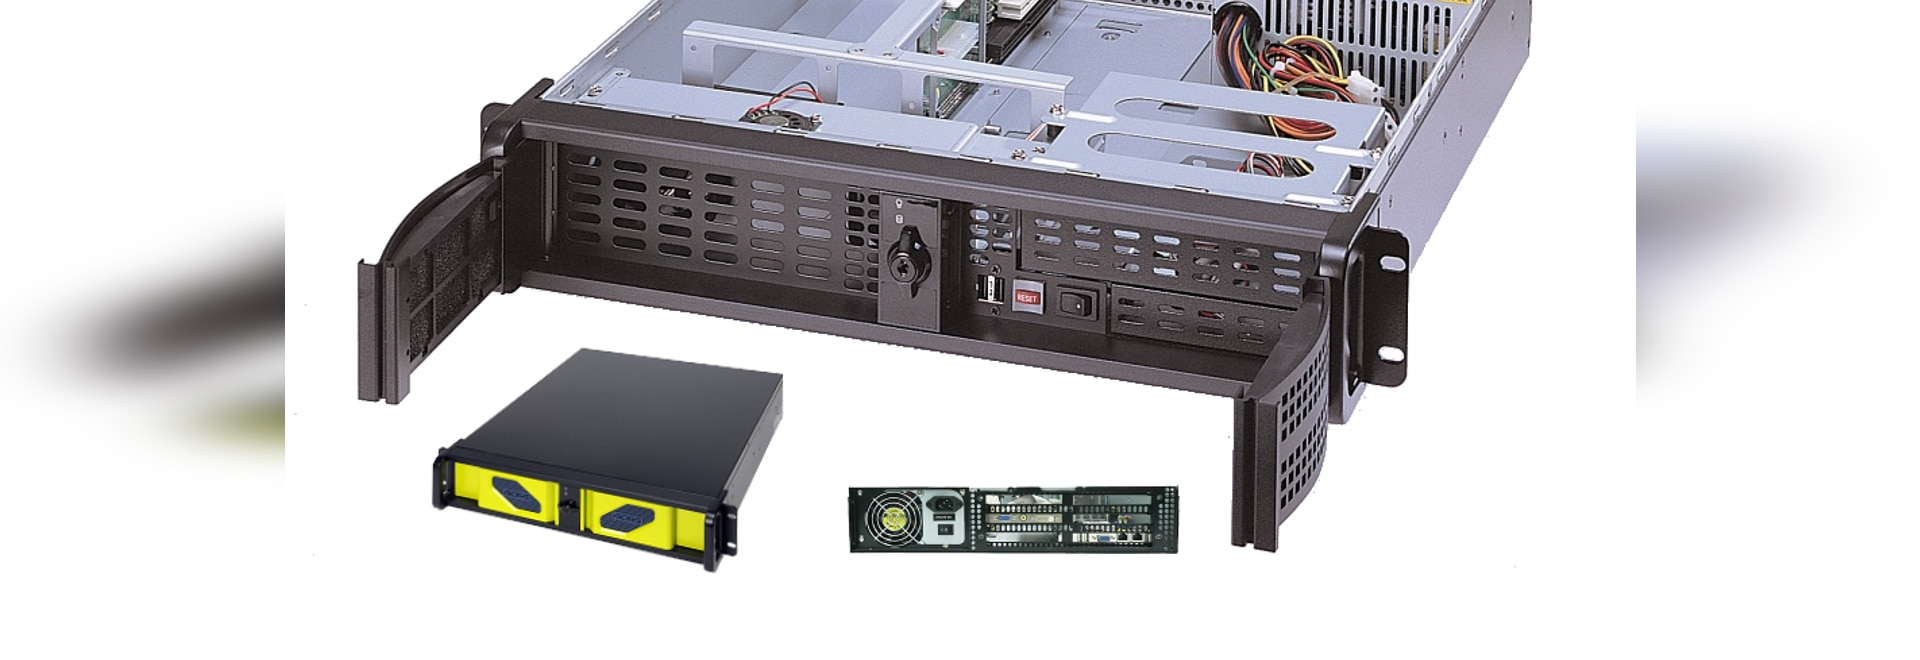 """AICSYS Inc. 2U Rackmount chassis for SBC with (1) 5.25"""" & (2) 3.5"""" Drive Bays, 4 PCI slot. PICMG 1.0 or 1.3 SHB Backplane supports PS/2 size power supply"""